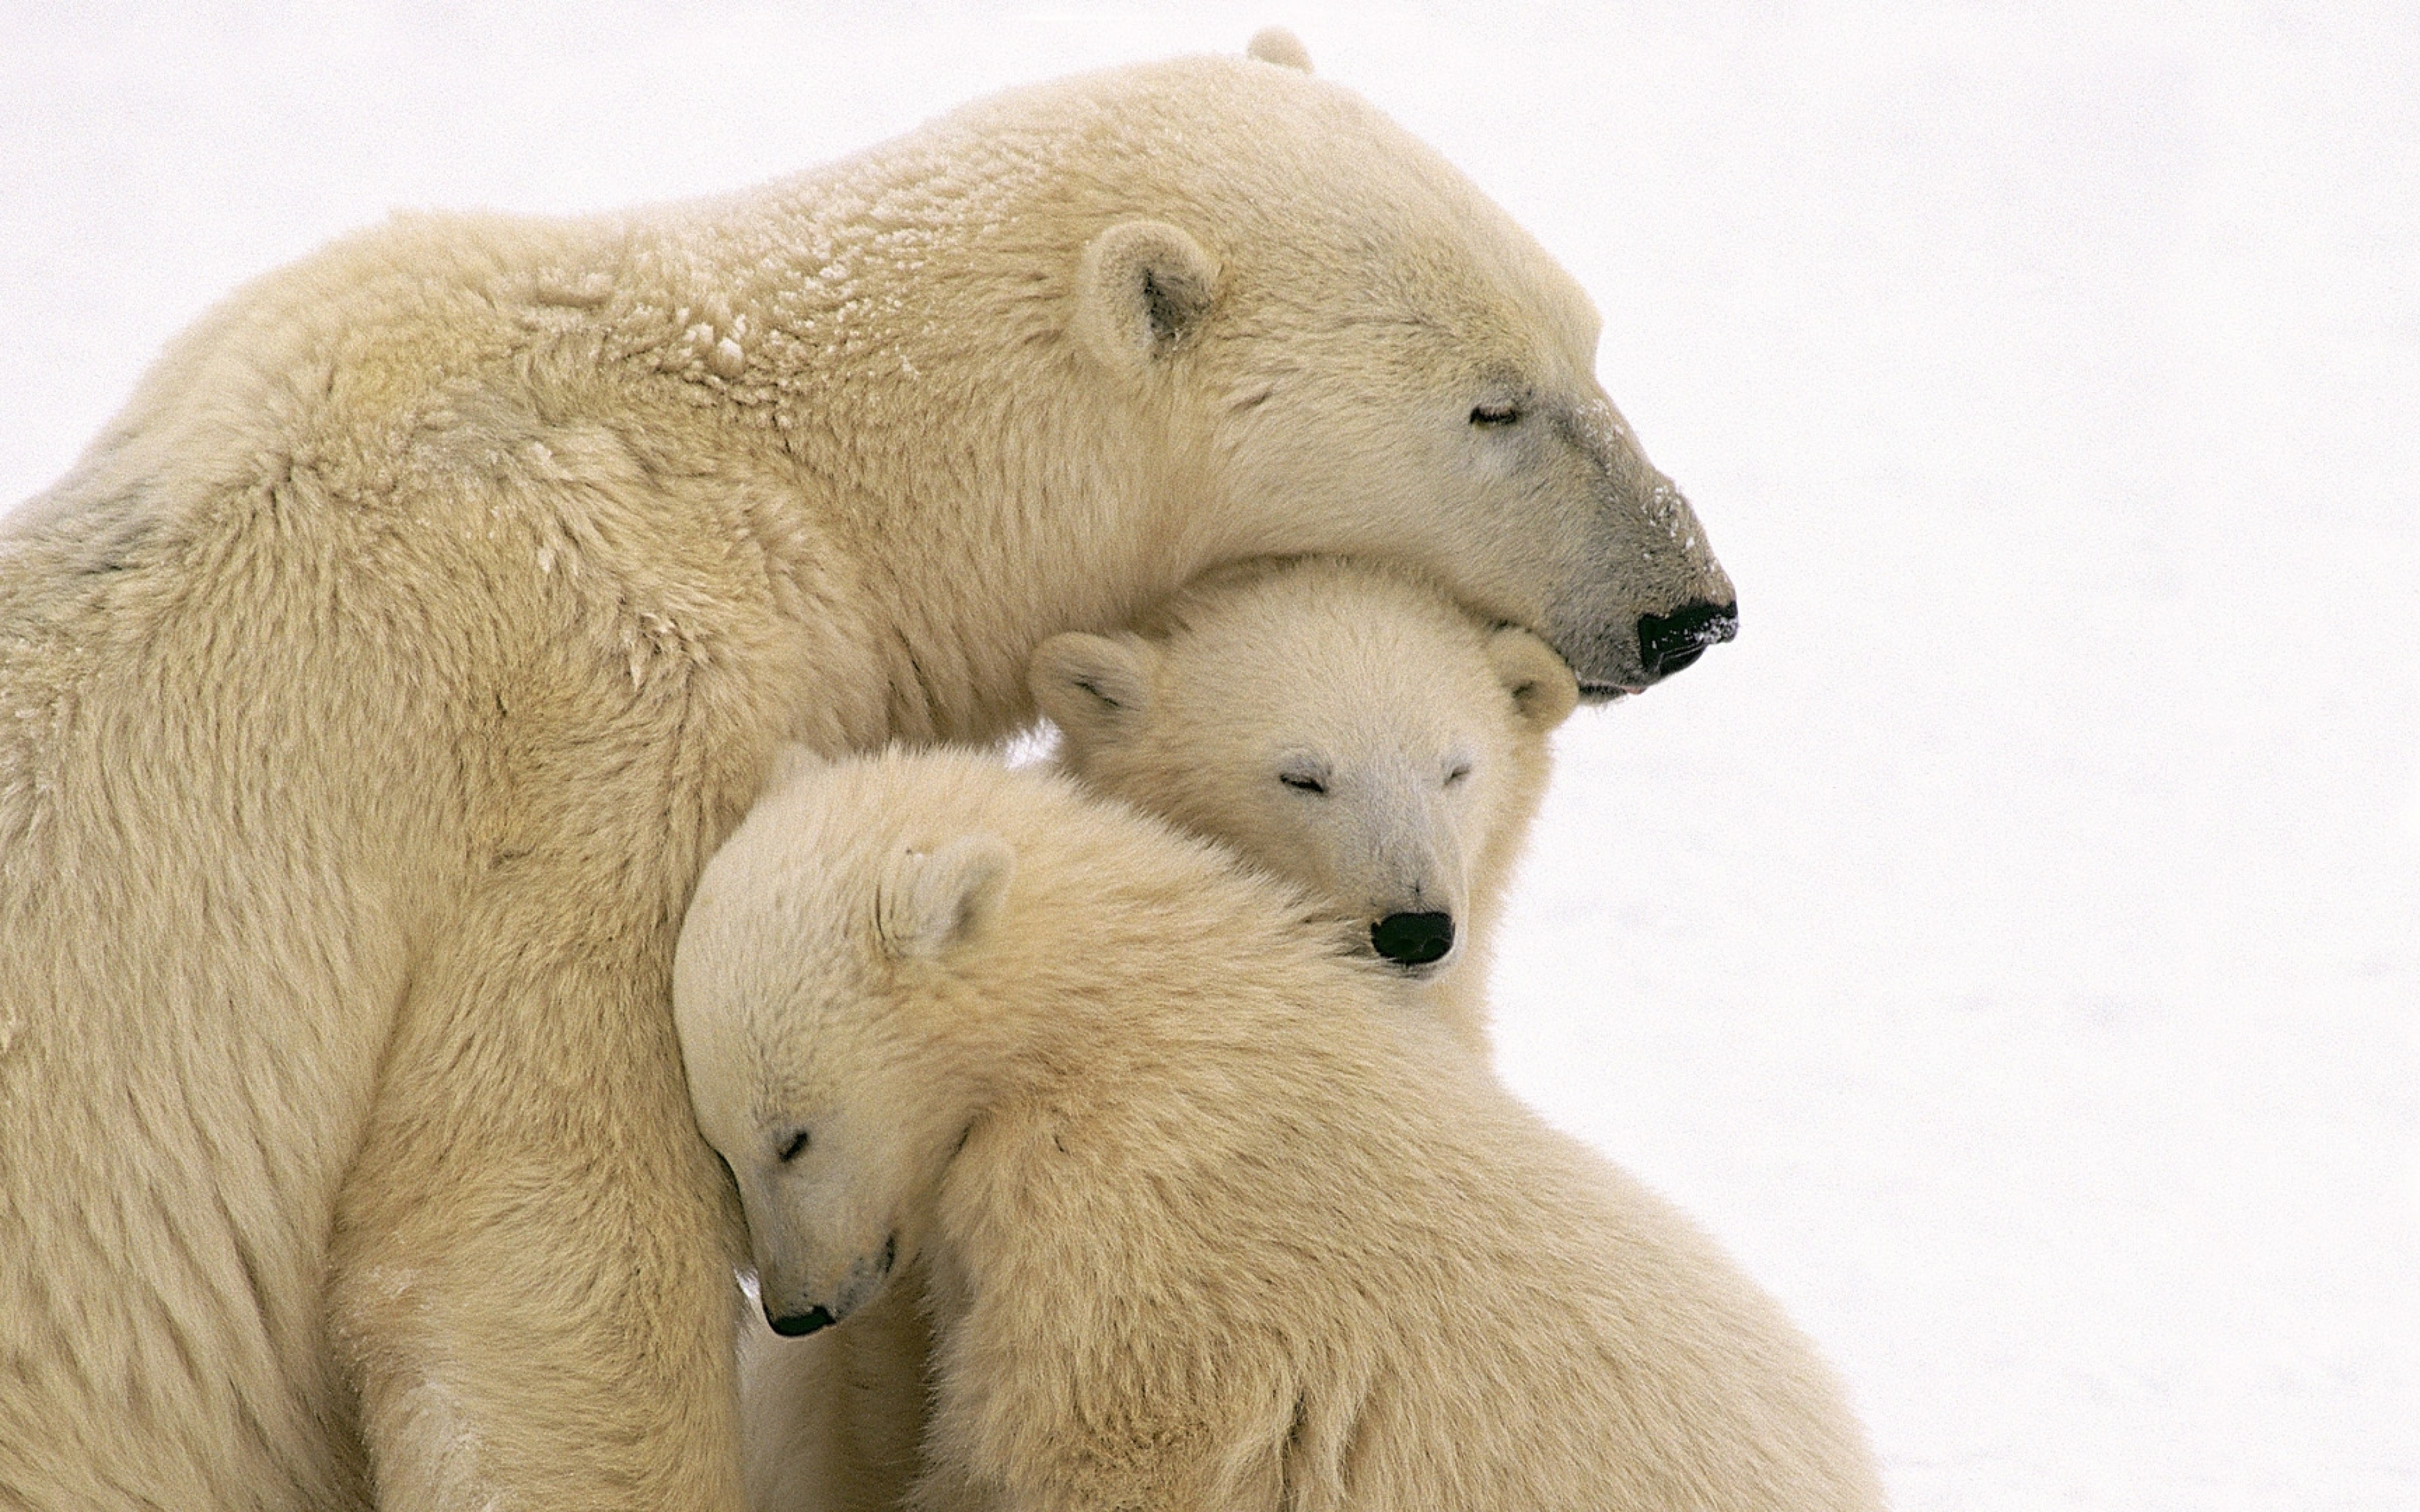 polar_bears_care_family_babies_51522_3840x2400.jpg